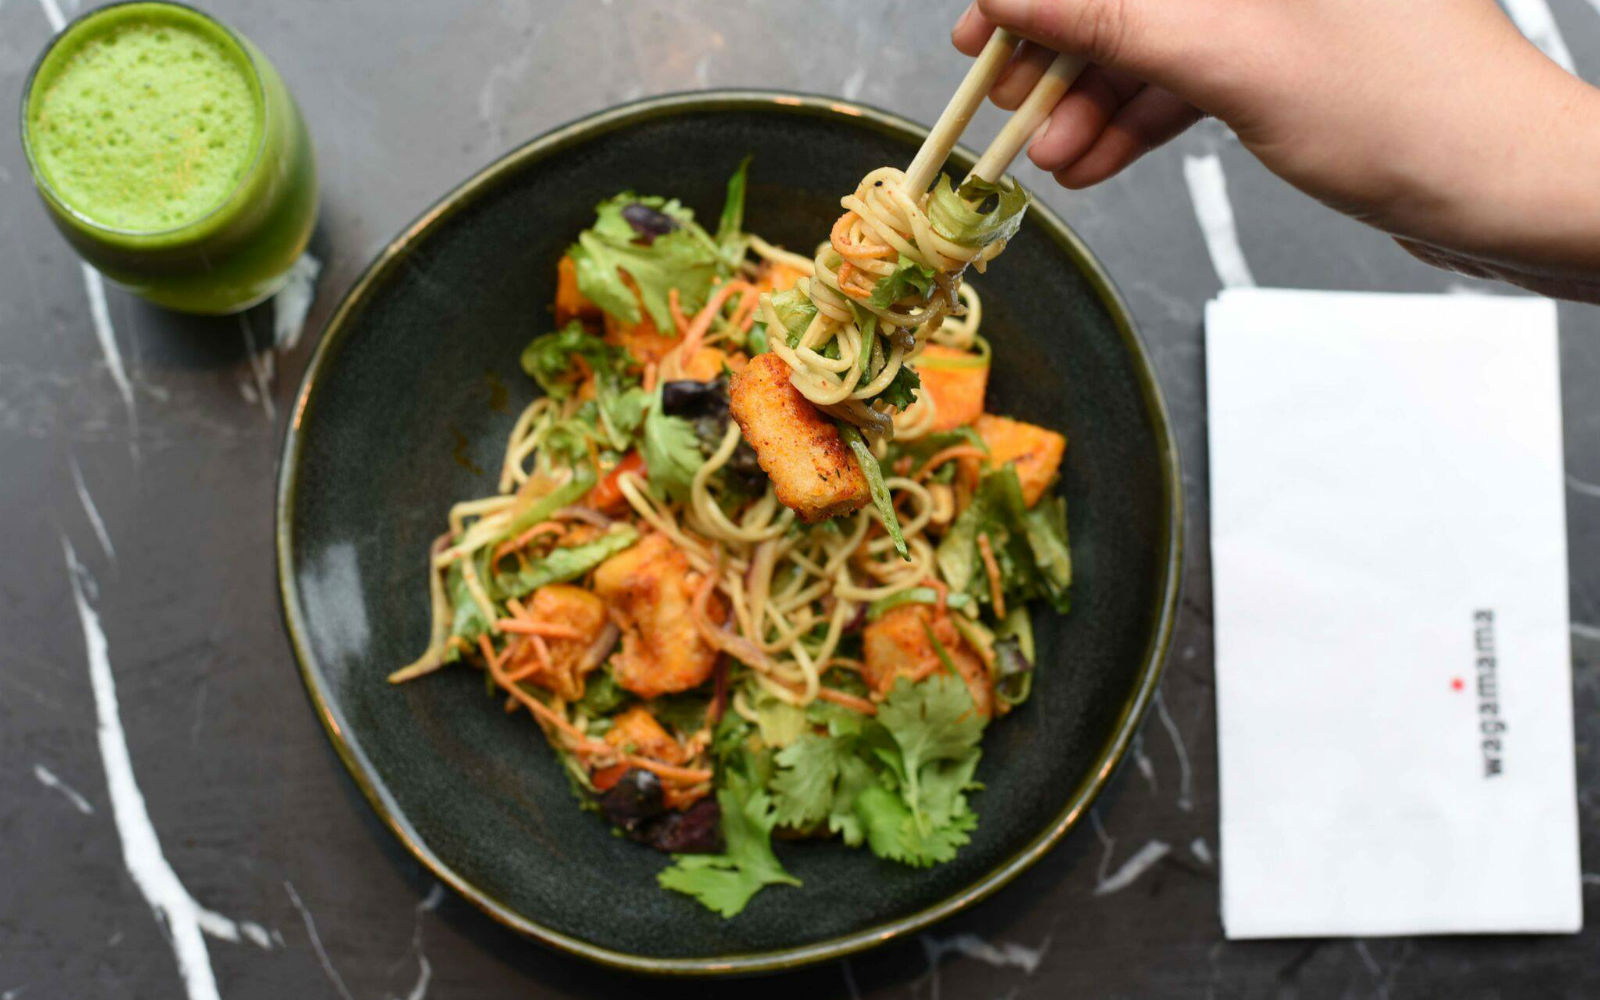 Asian Restaurant Chain Wagamama Is Preparing To Launch A New